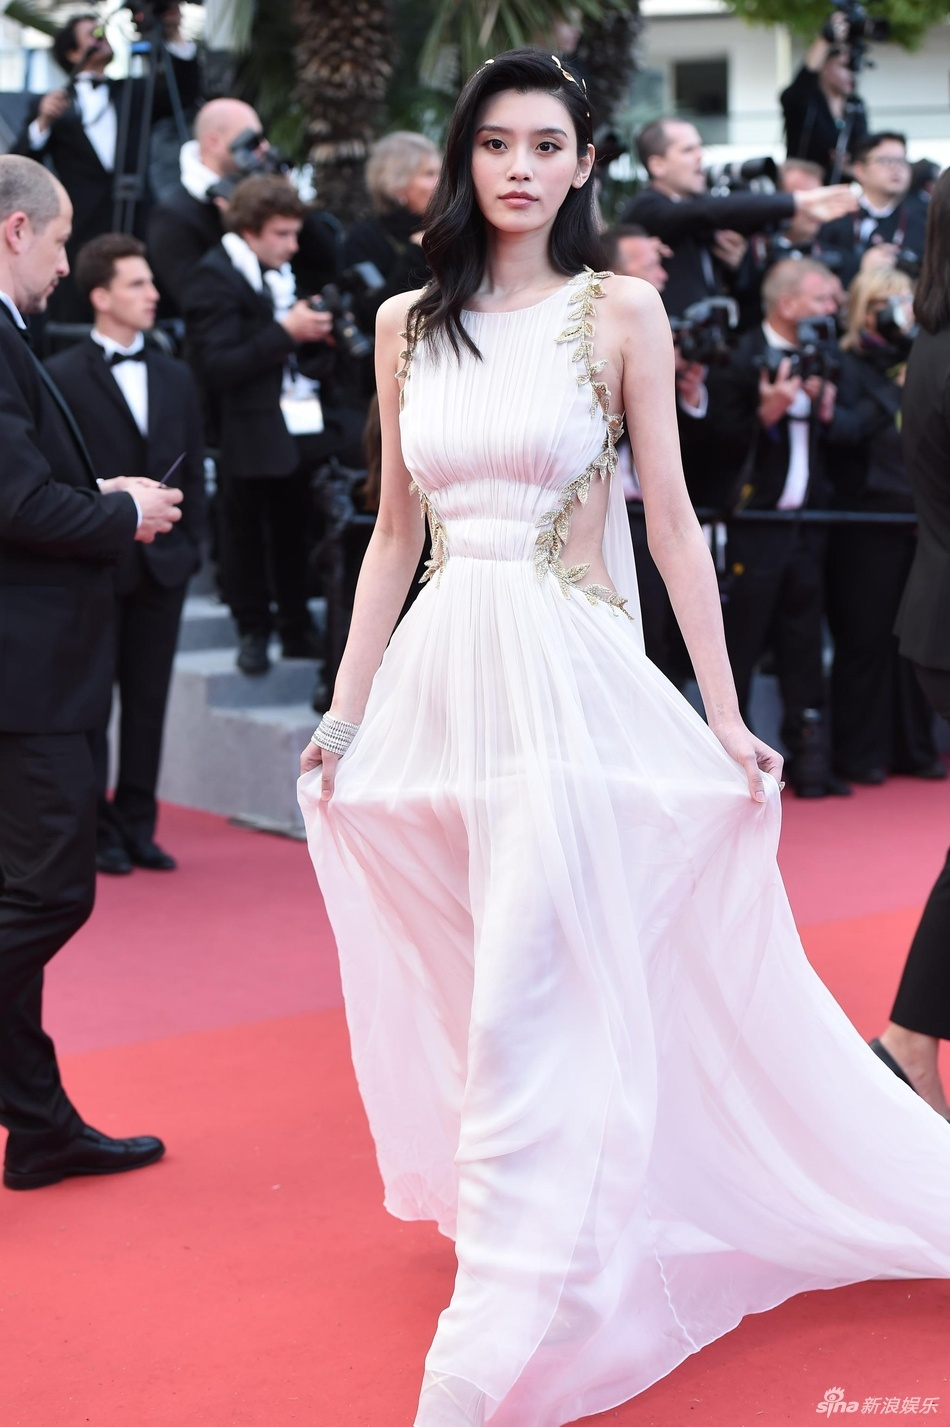 Tham do Cannes anh 6